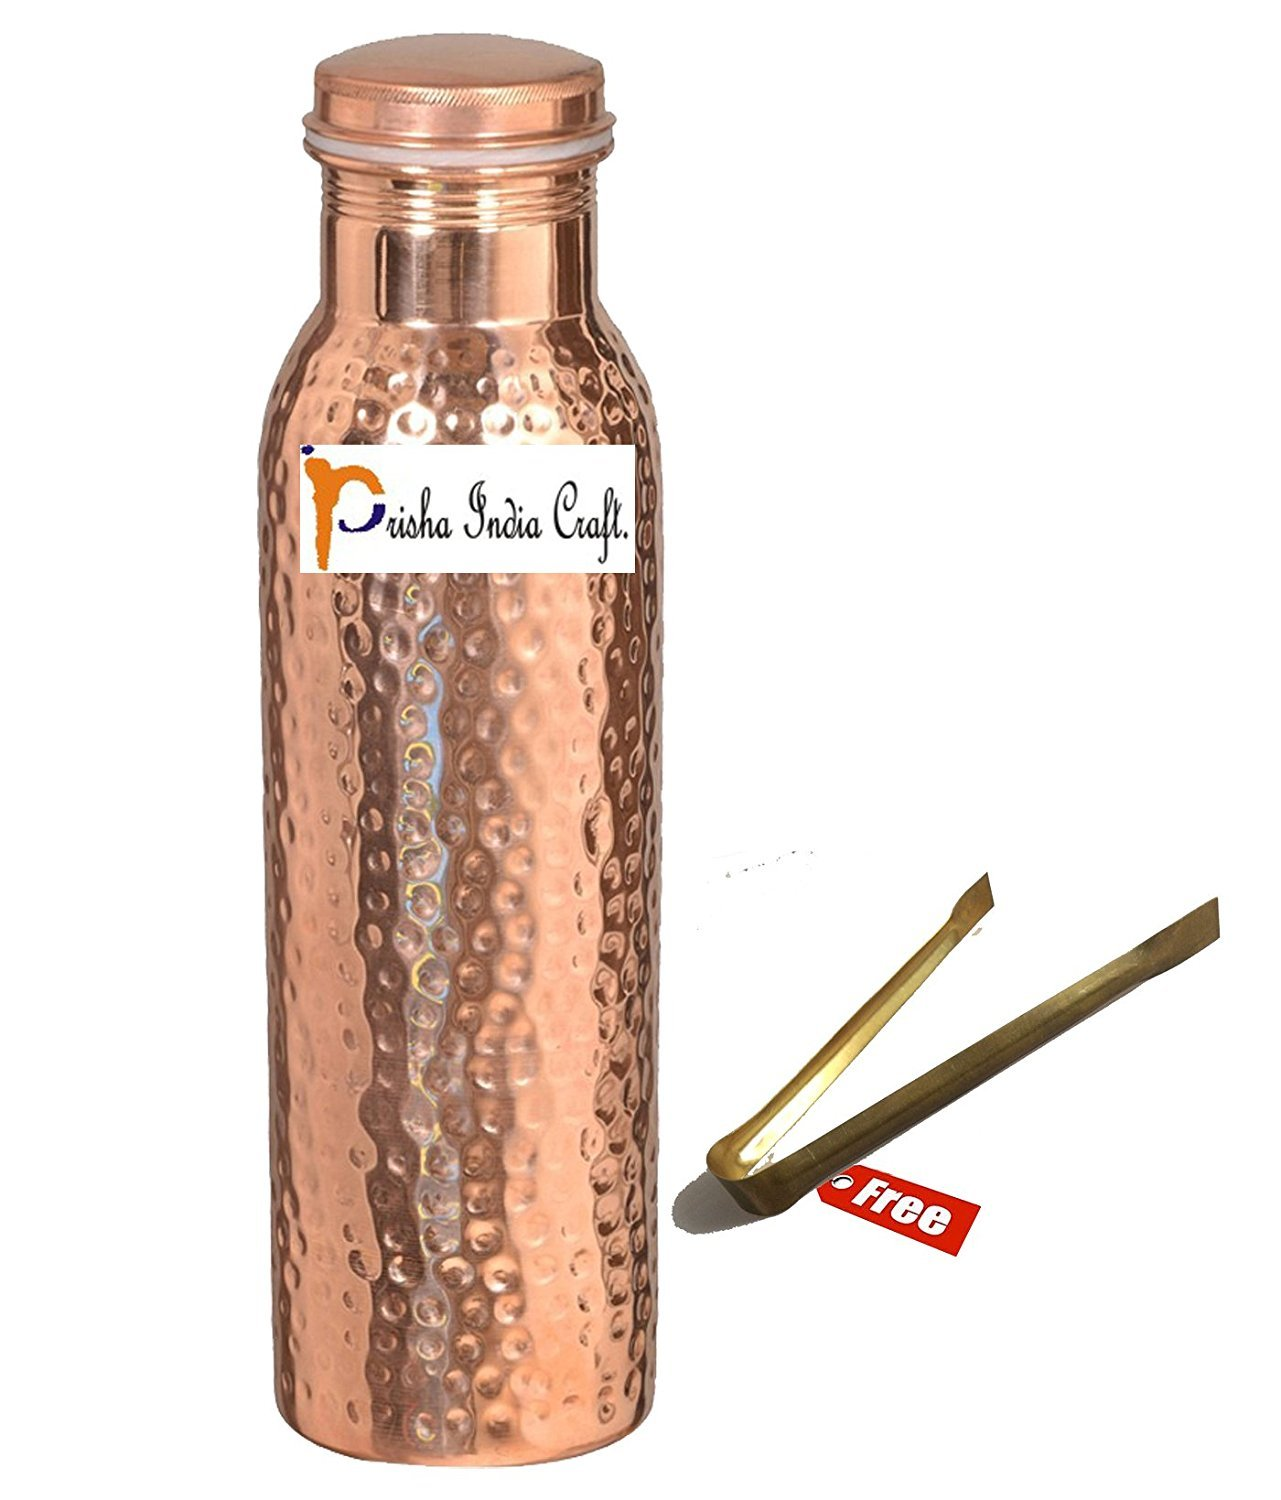 900ml / 30oz – Prisha India Craft Pure Copper Water Bottle Ayurveda Health Benefits - FREE BRASS ICE TONGS with WOODEN KEYRING Water Bottles Joint Free, Christmas Gift